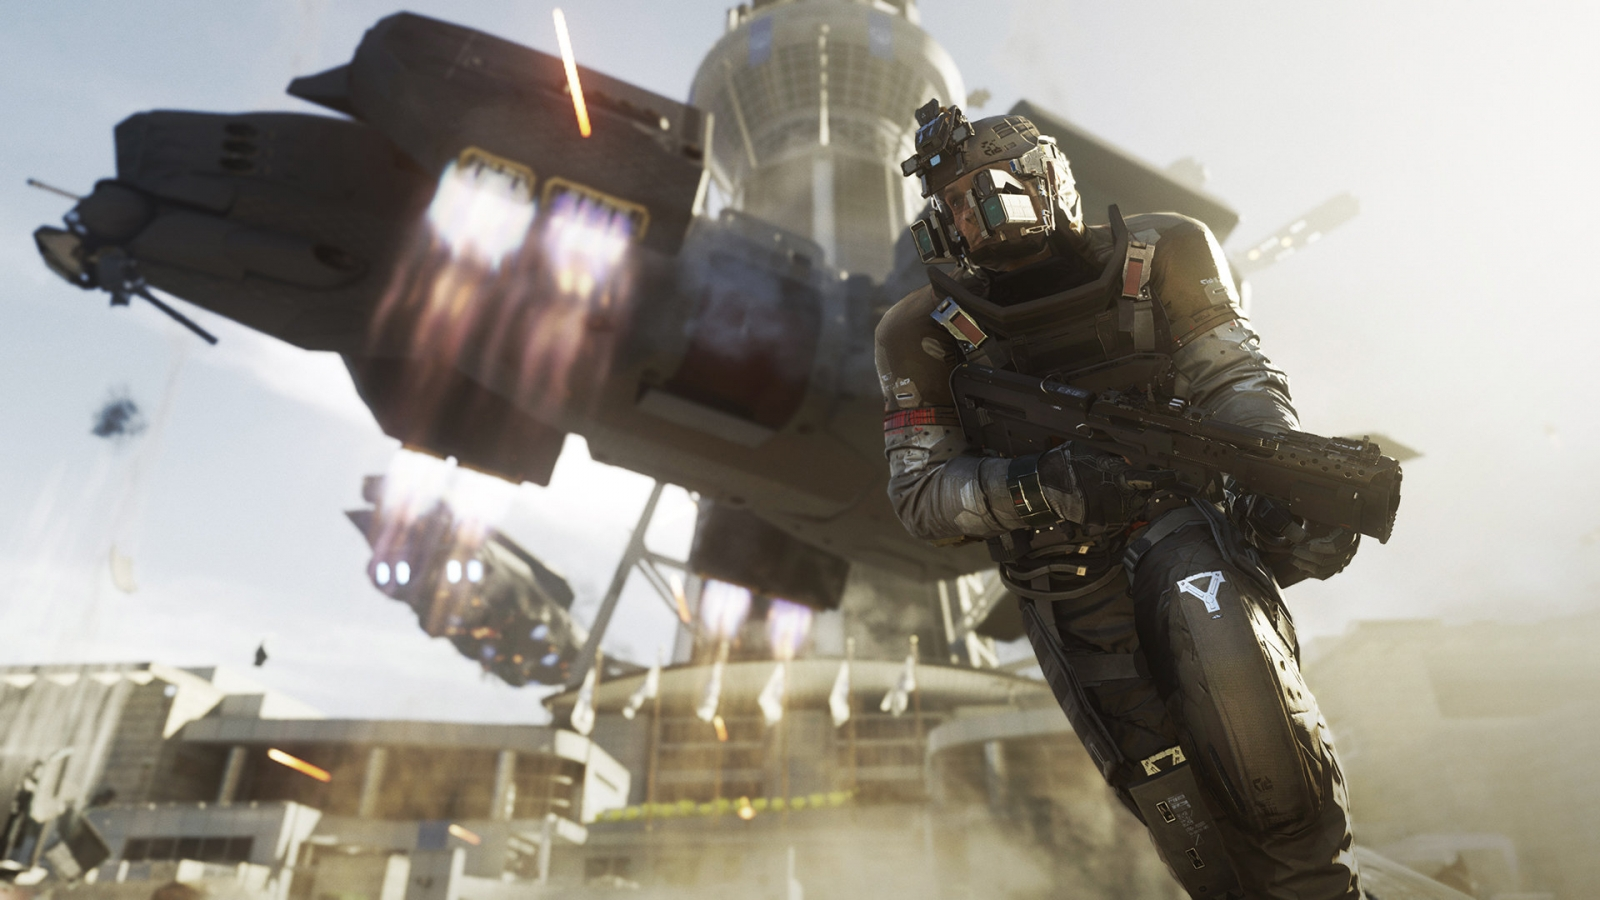 Call of Duty Infinite Warfare has officially gone gold, developer Infinity Ward announces